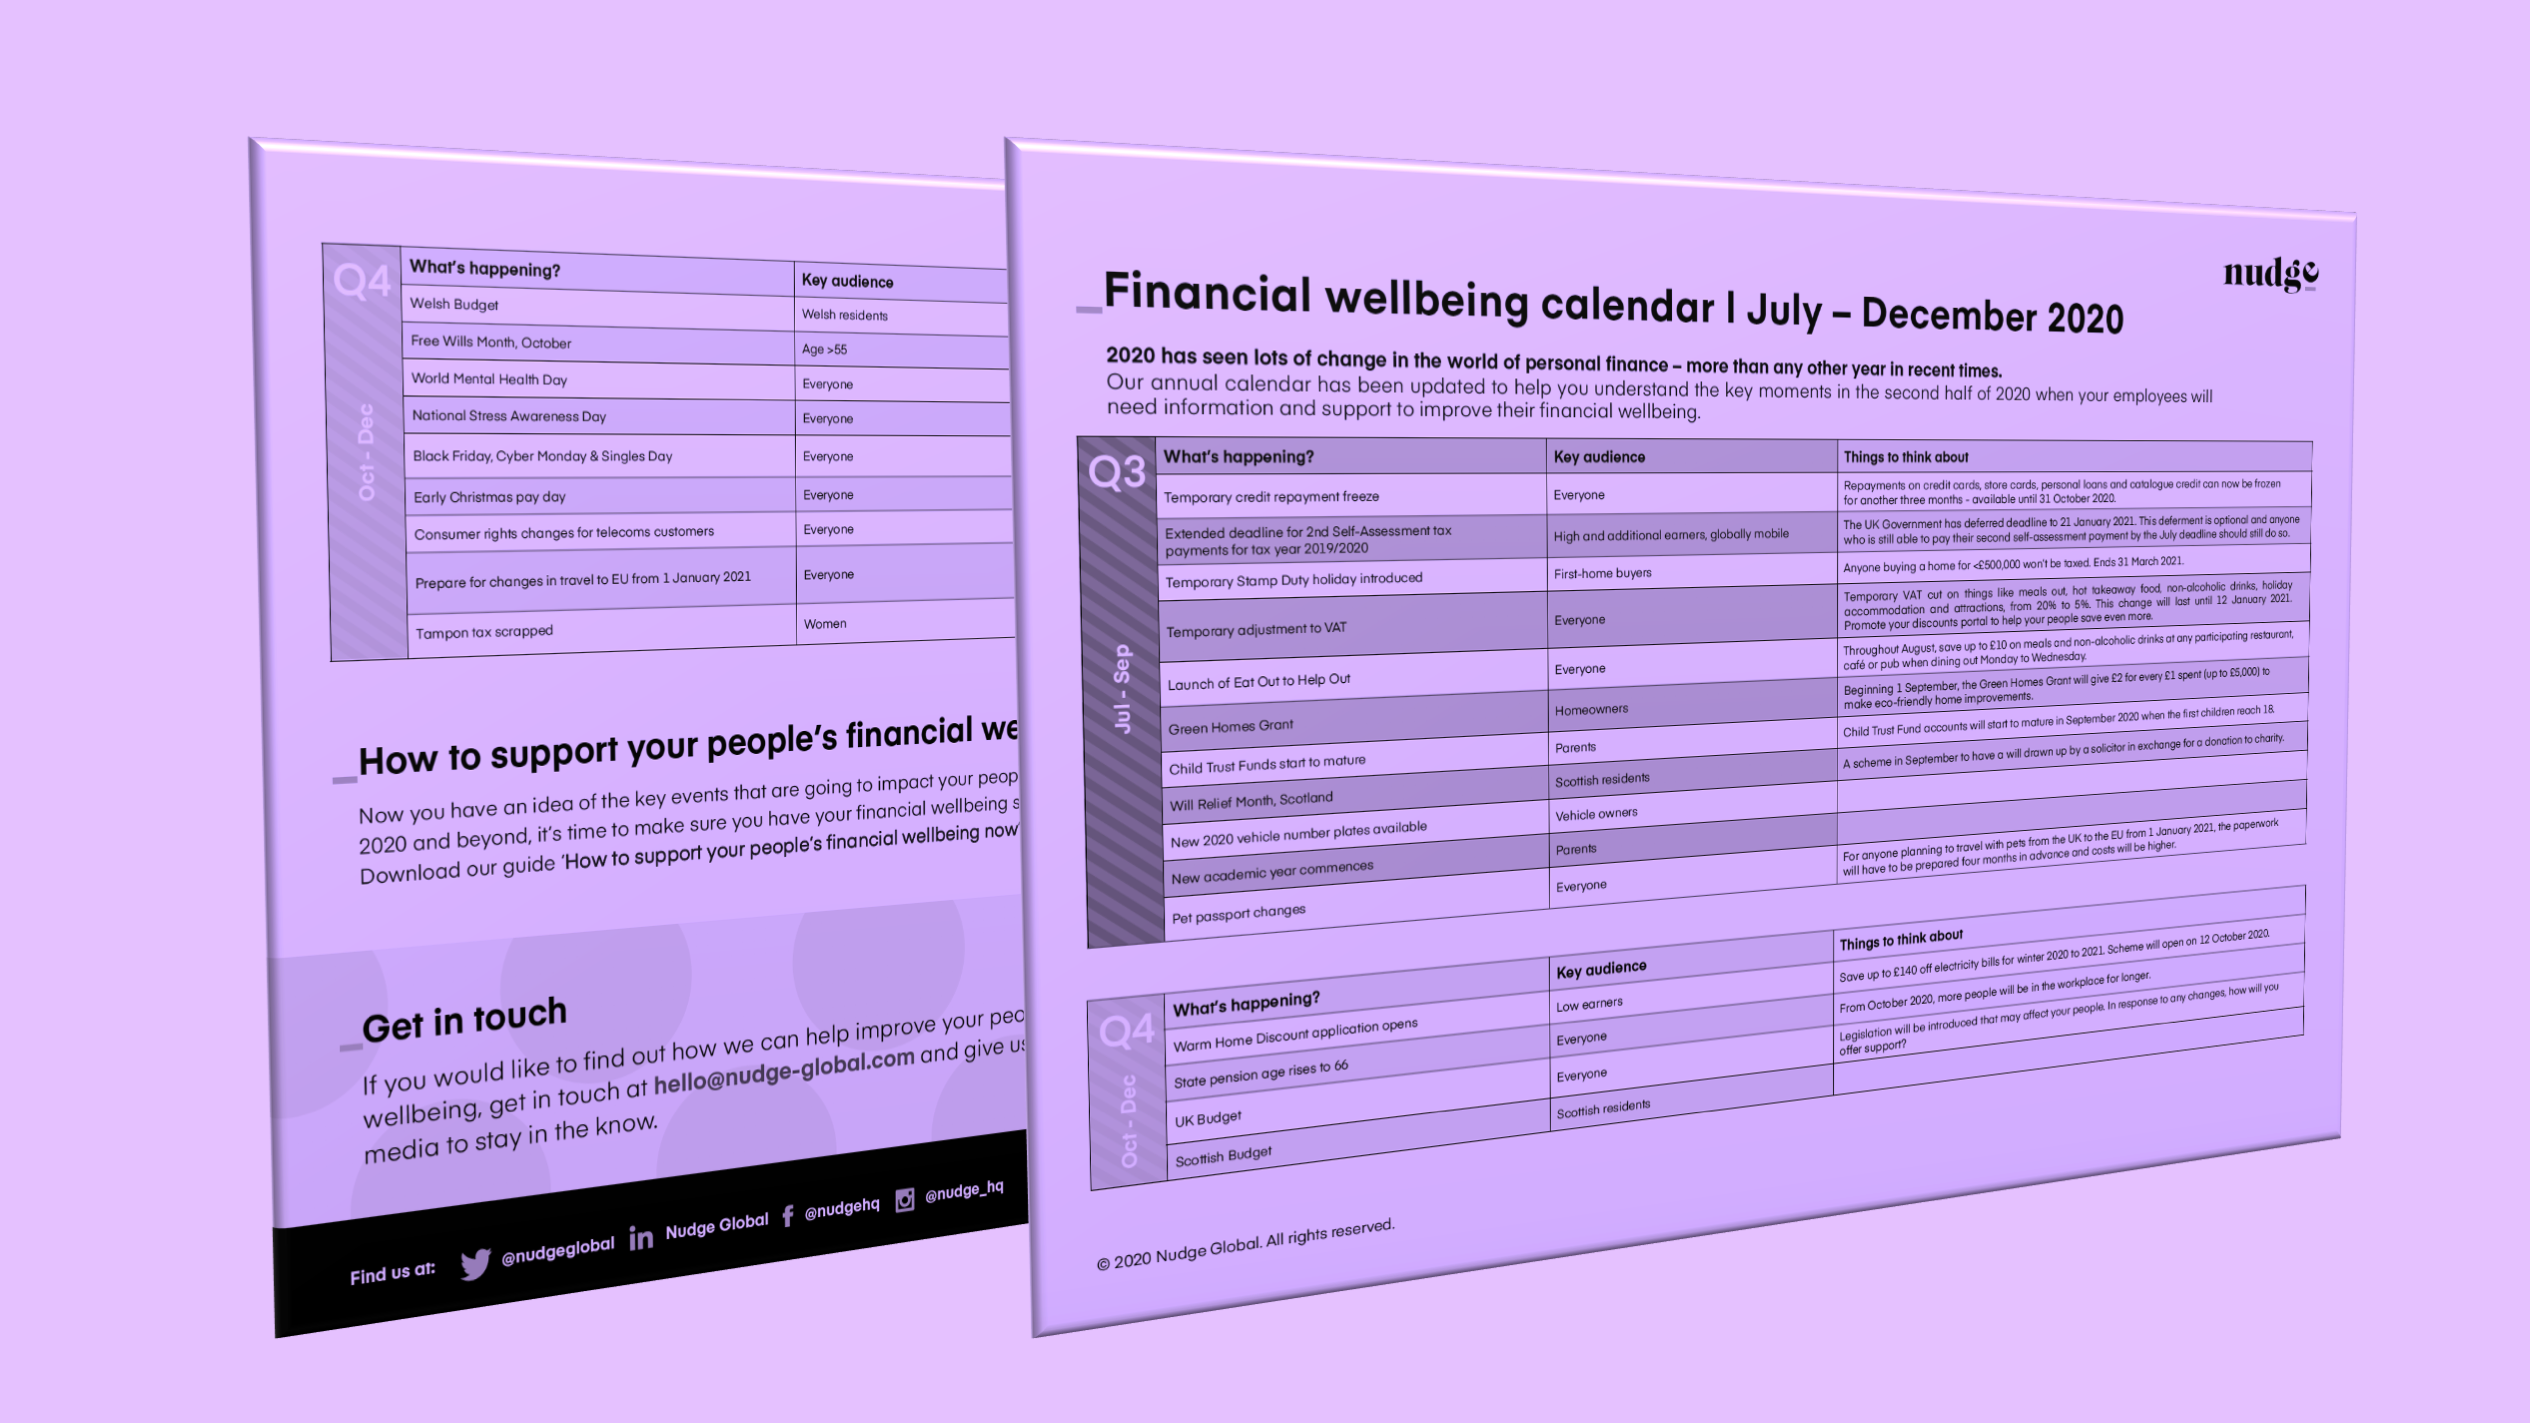 UK Financial wellbeing calendar 2020